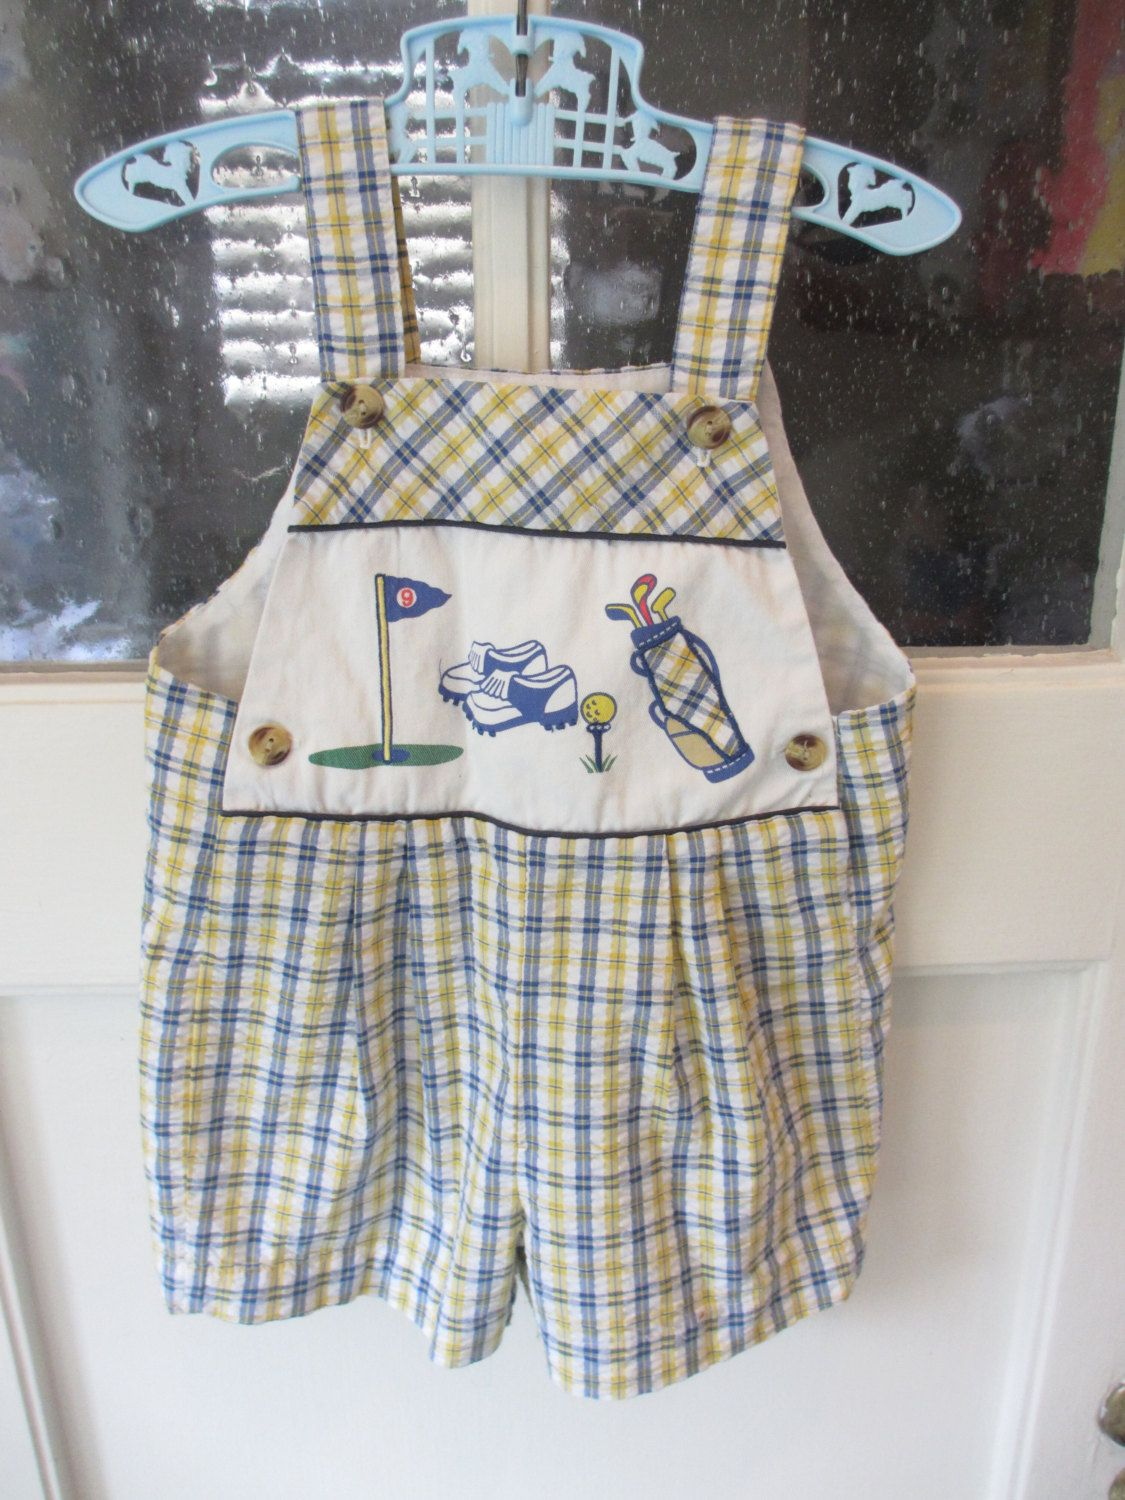 9bc168ff7c6 Vintage Toddler Plaid Overalls by MemphisNanney on Etsy. Find this Pin and  more on Vintage Baby Clothes ...